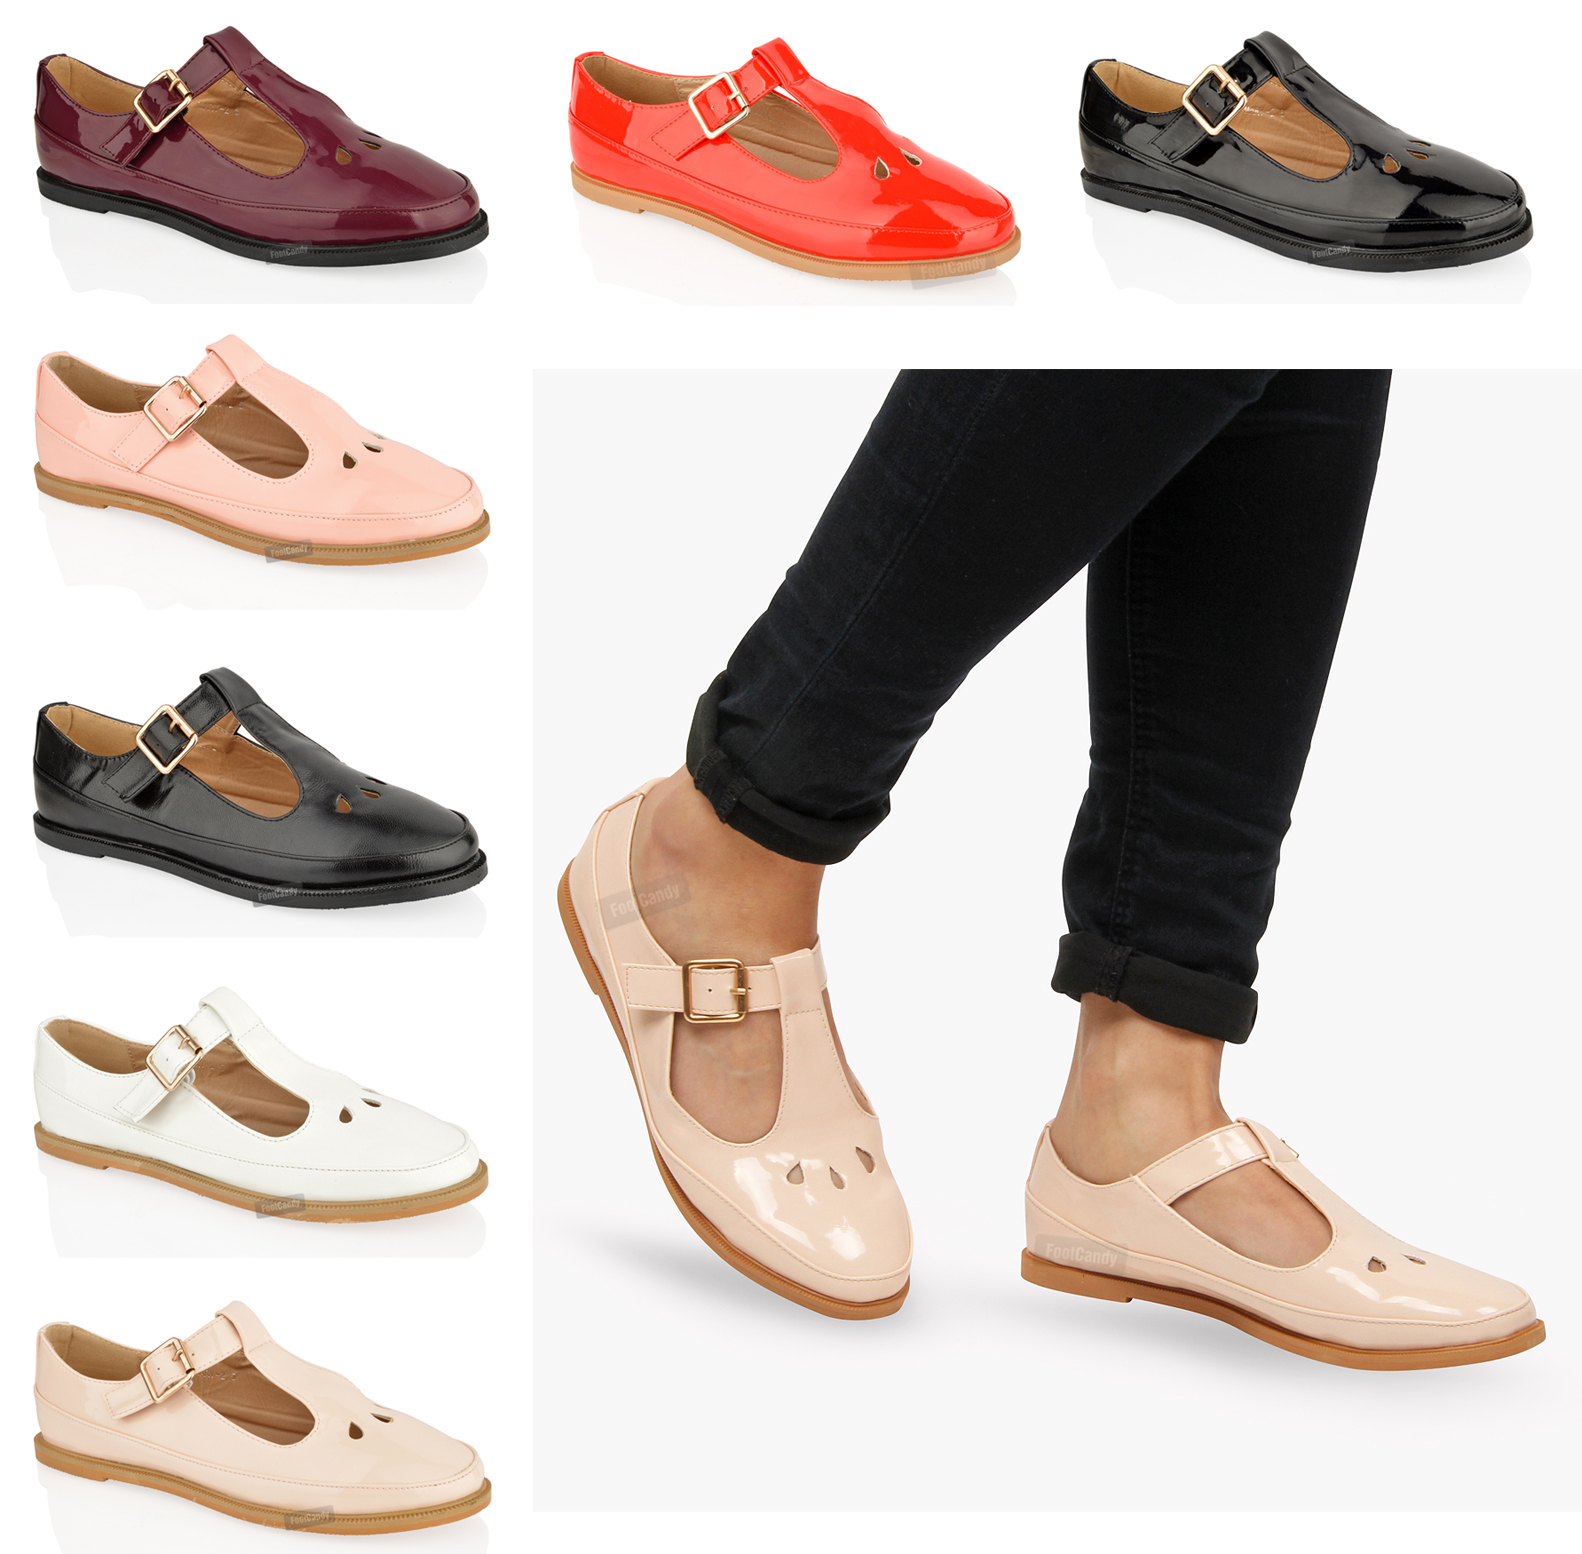 WOMENS-LADIES-FLAT-CUT-OUT-MARY-JANE-T-BAR-GEEK-PUMPS-BLACK-PATENT-SHOES-SIZE